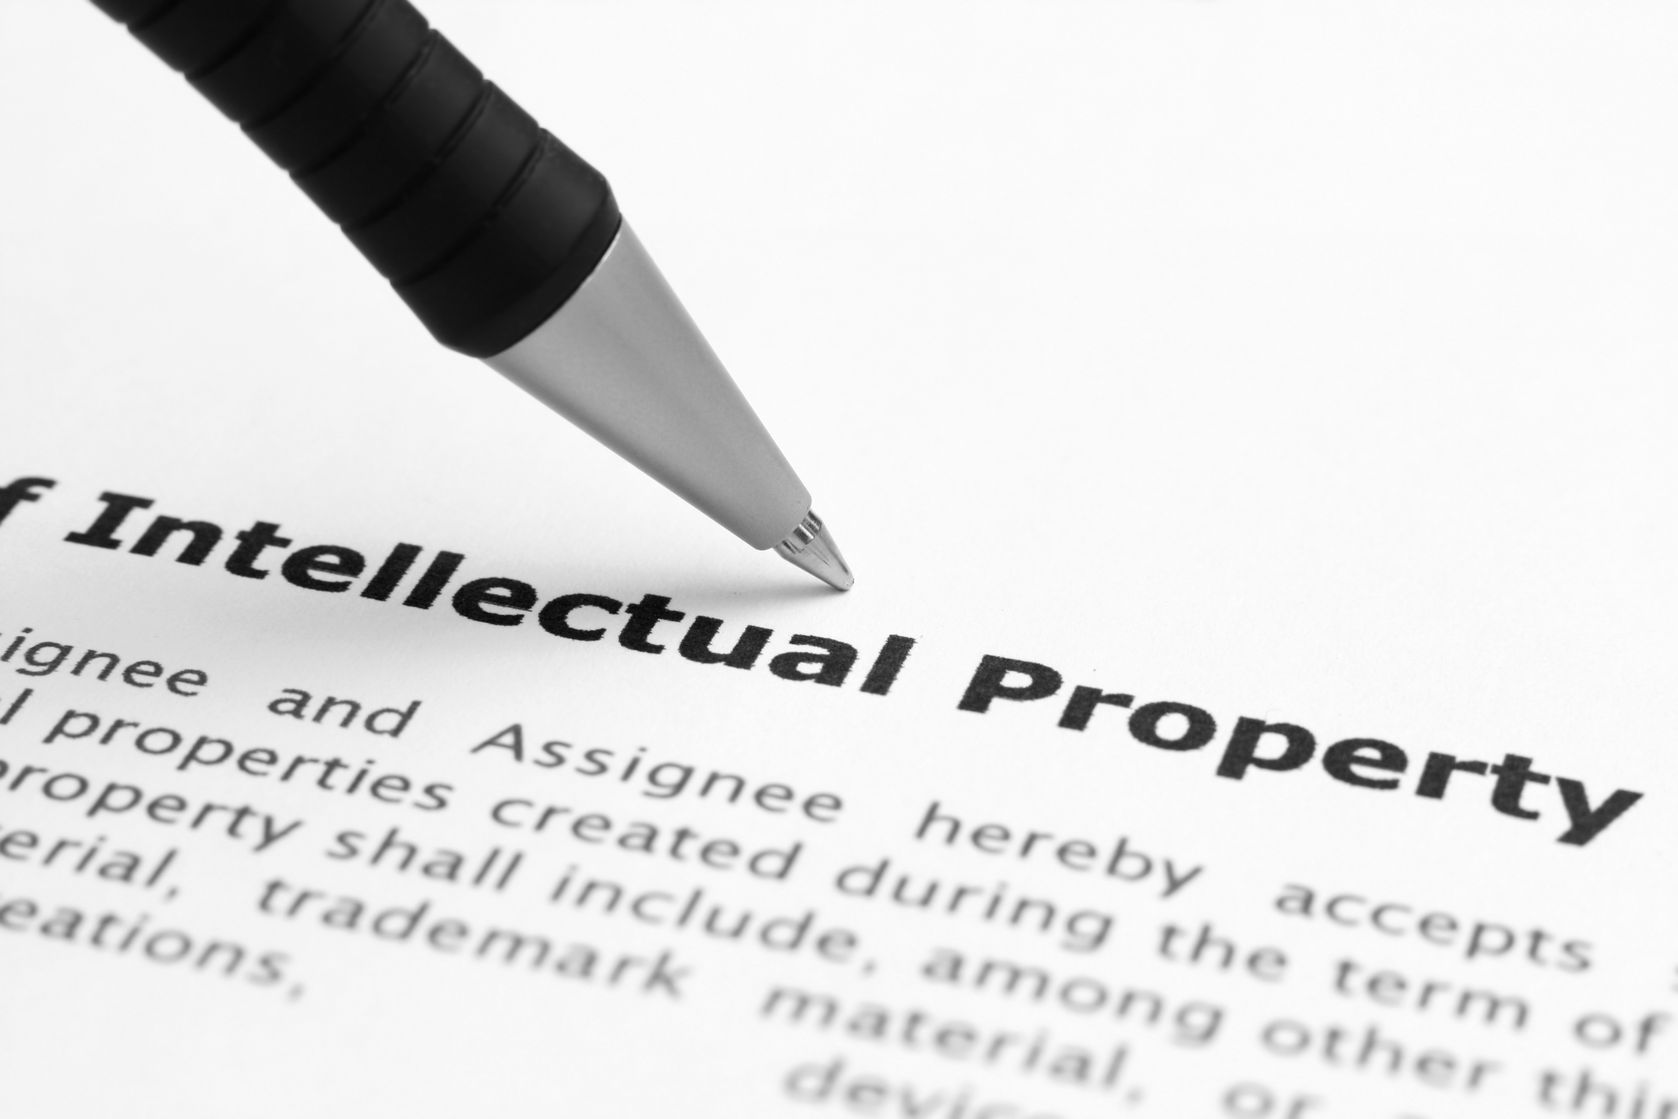 Intellectual Property & Internet Matters: Licensing, Protections, Disputes, Internet Technologies & Related Agreements